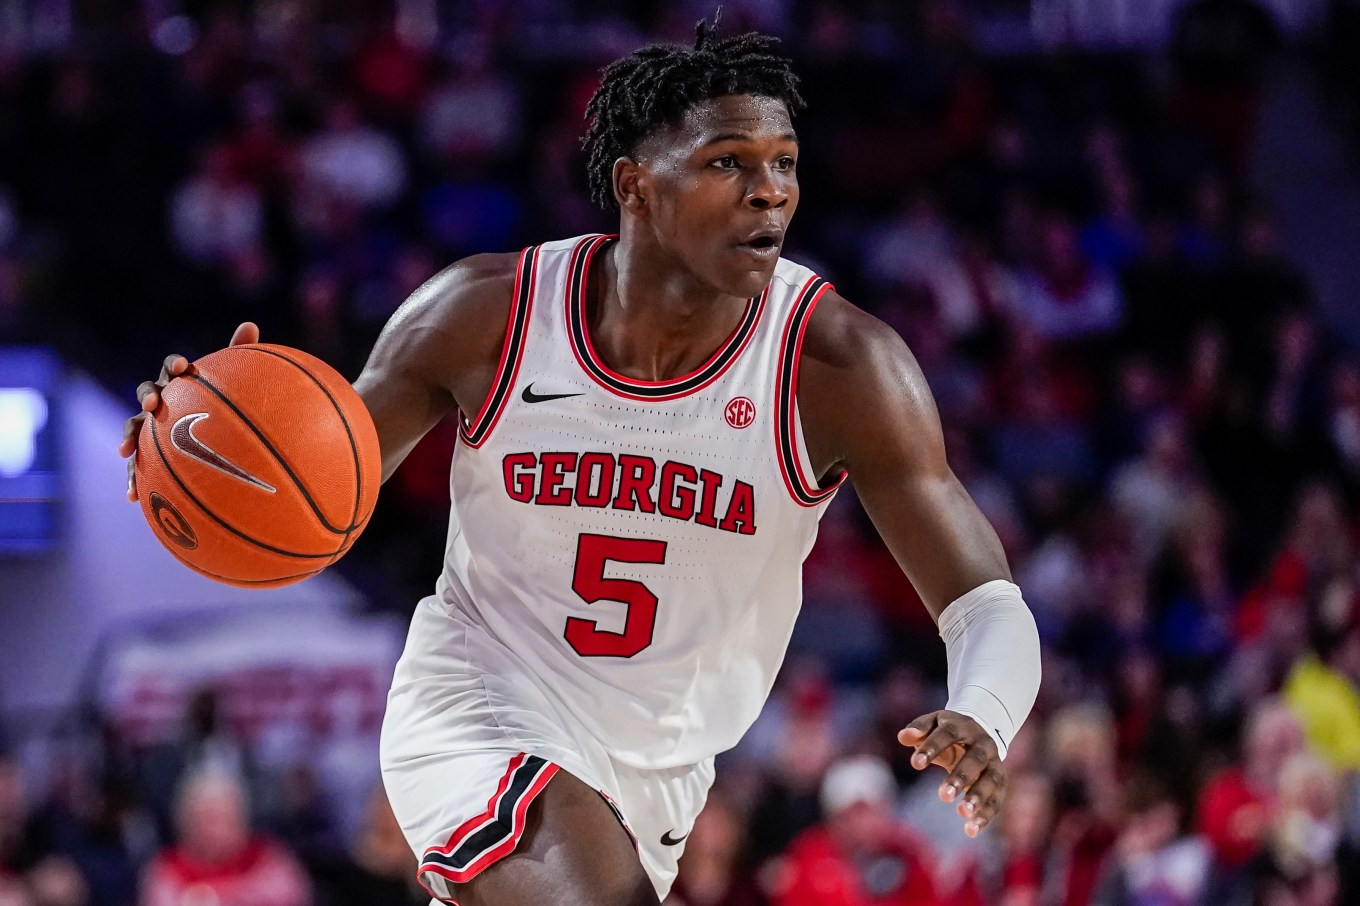 Georgia's Anthony Edwards armed with NBA athleticism, NBA strength ...